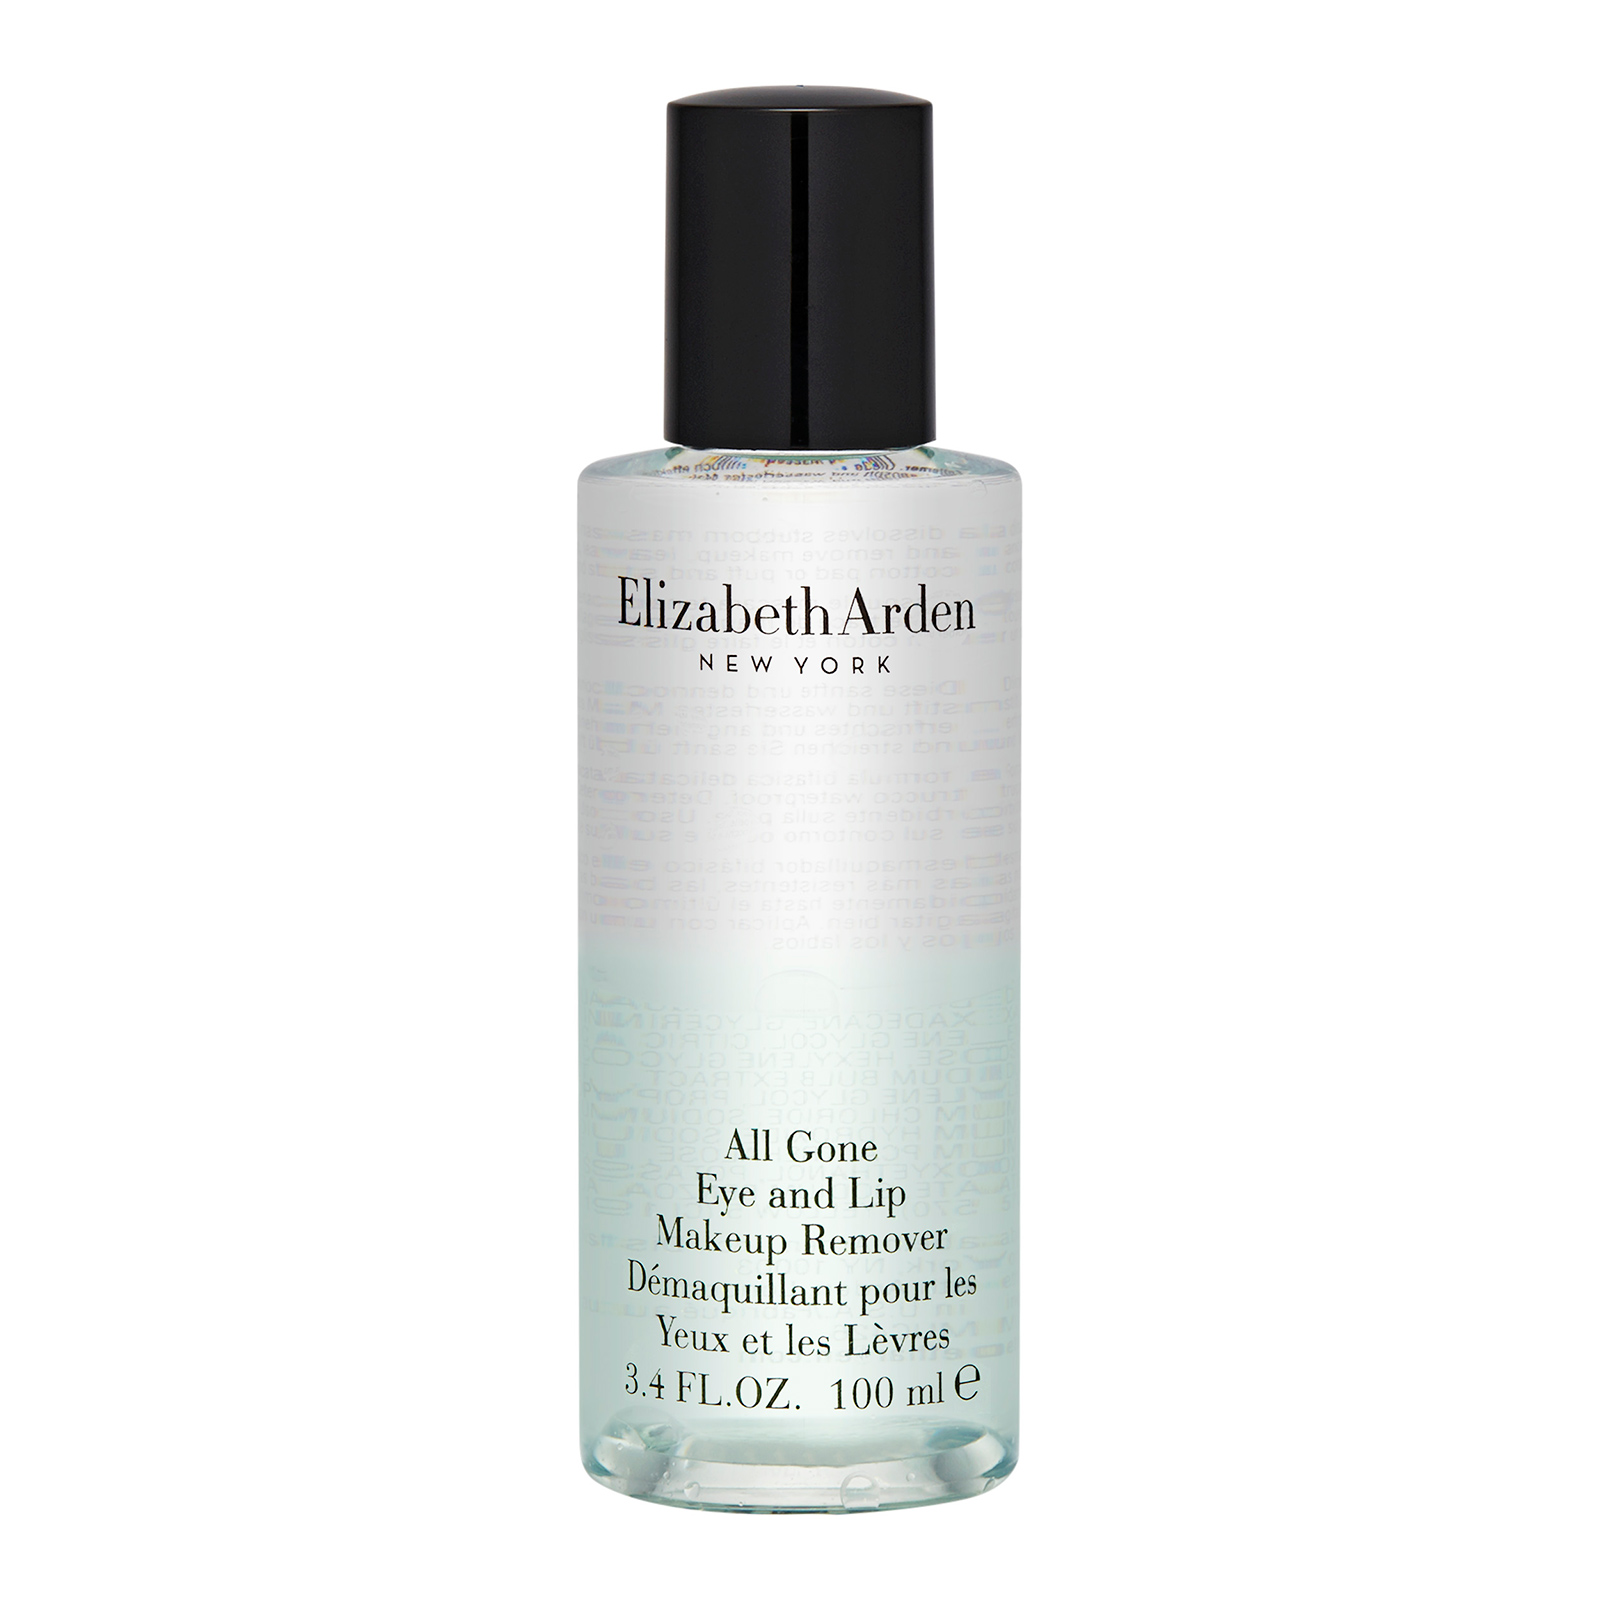 Elizabeth Arden Eye and Lip Makeup Remover 3.4oz, 100ml